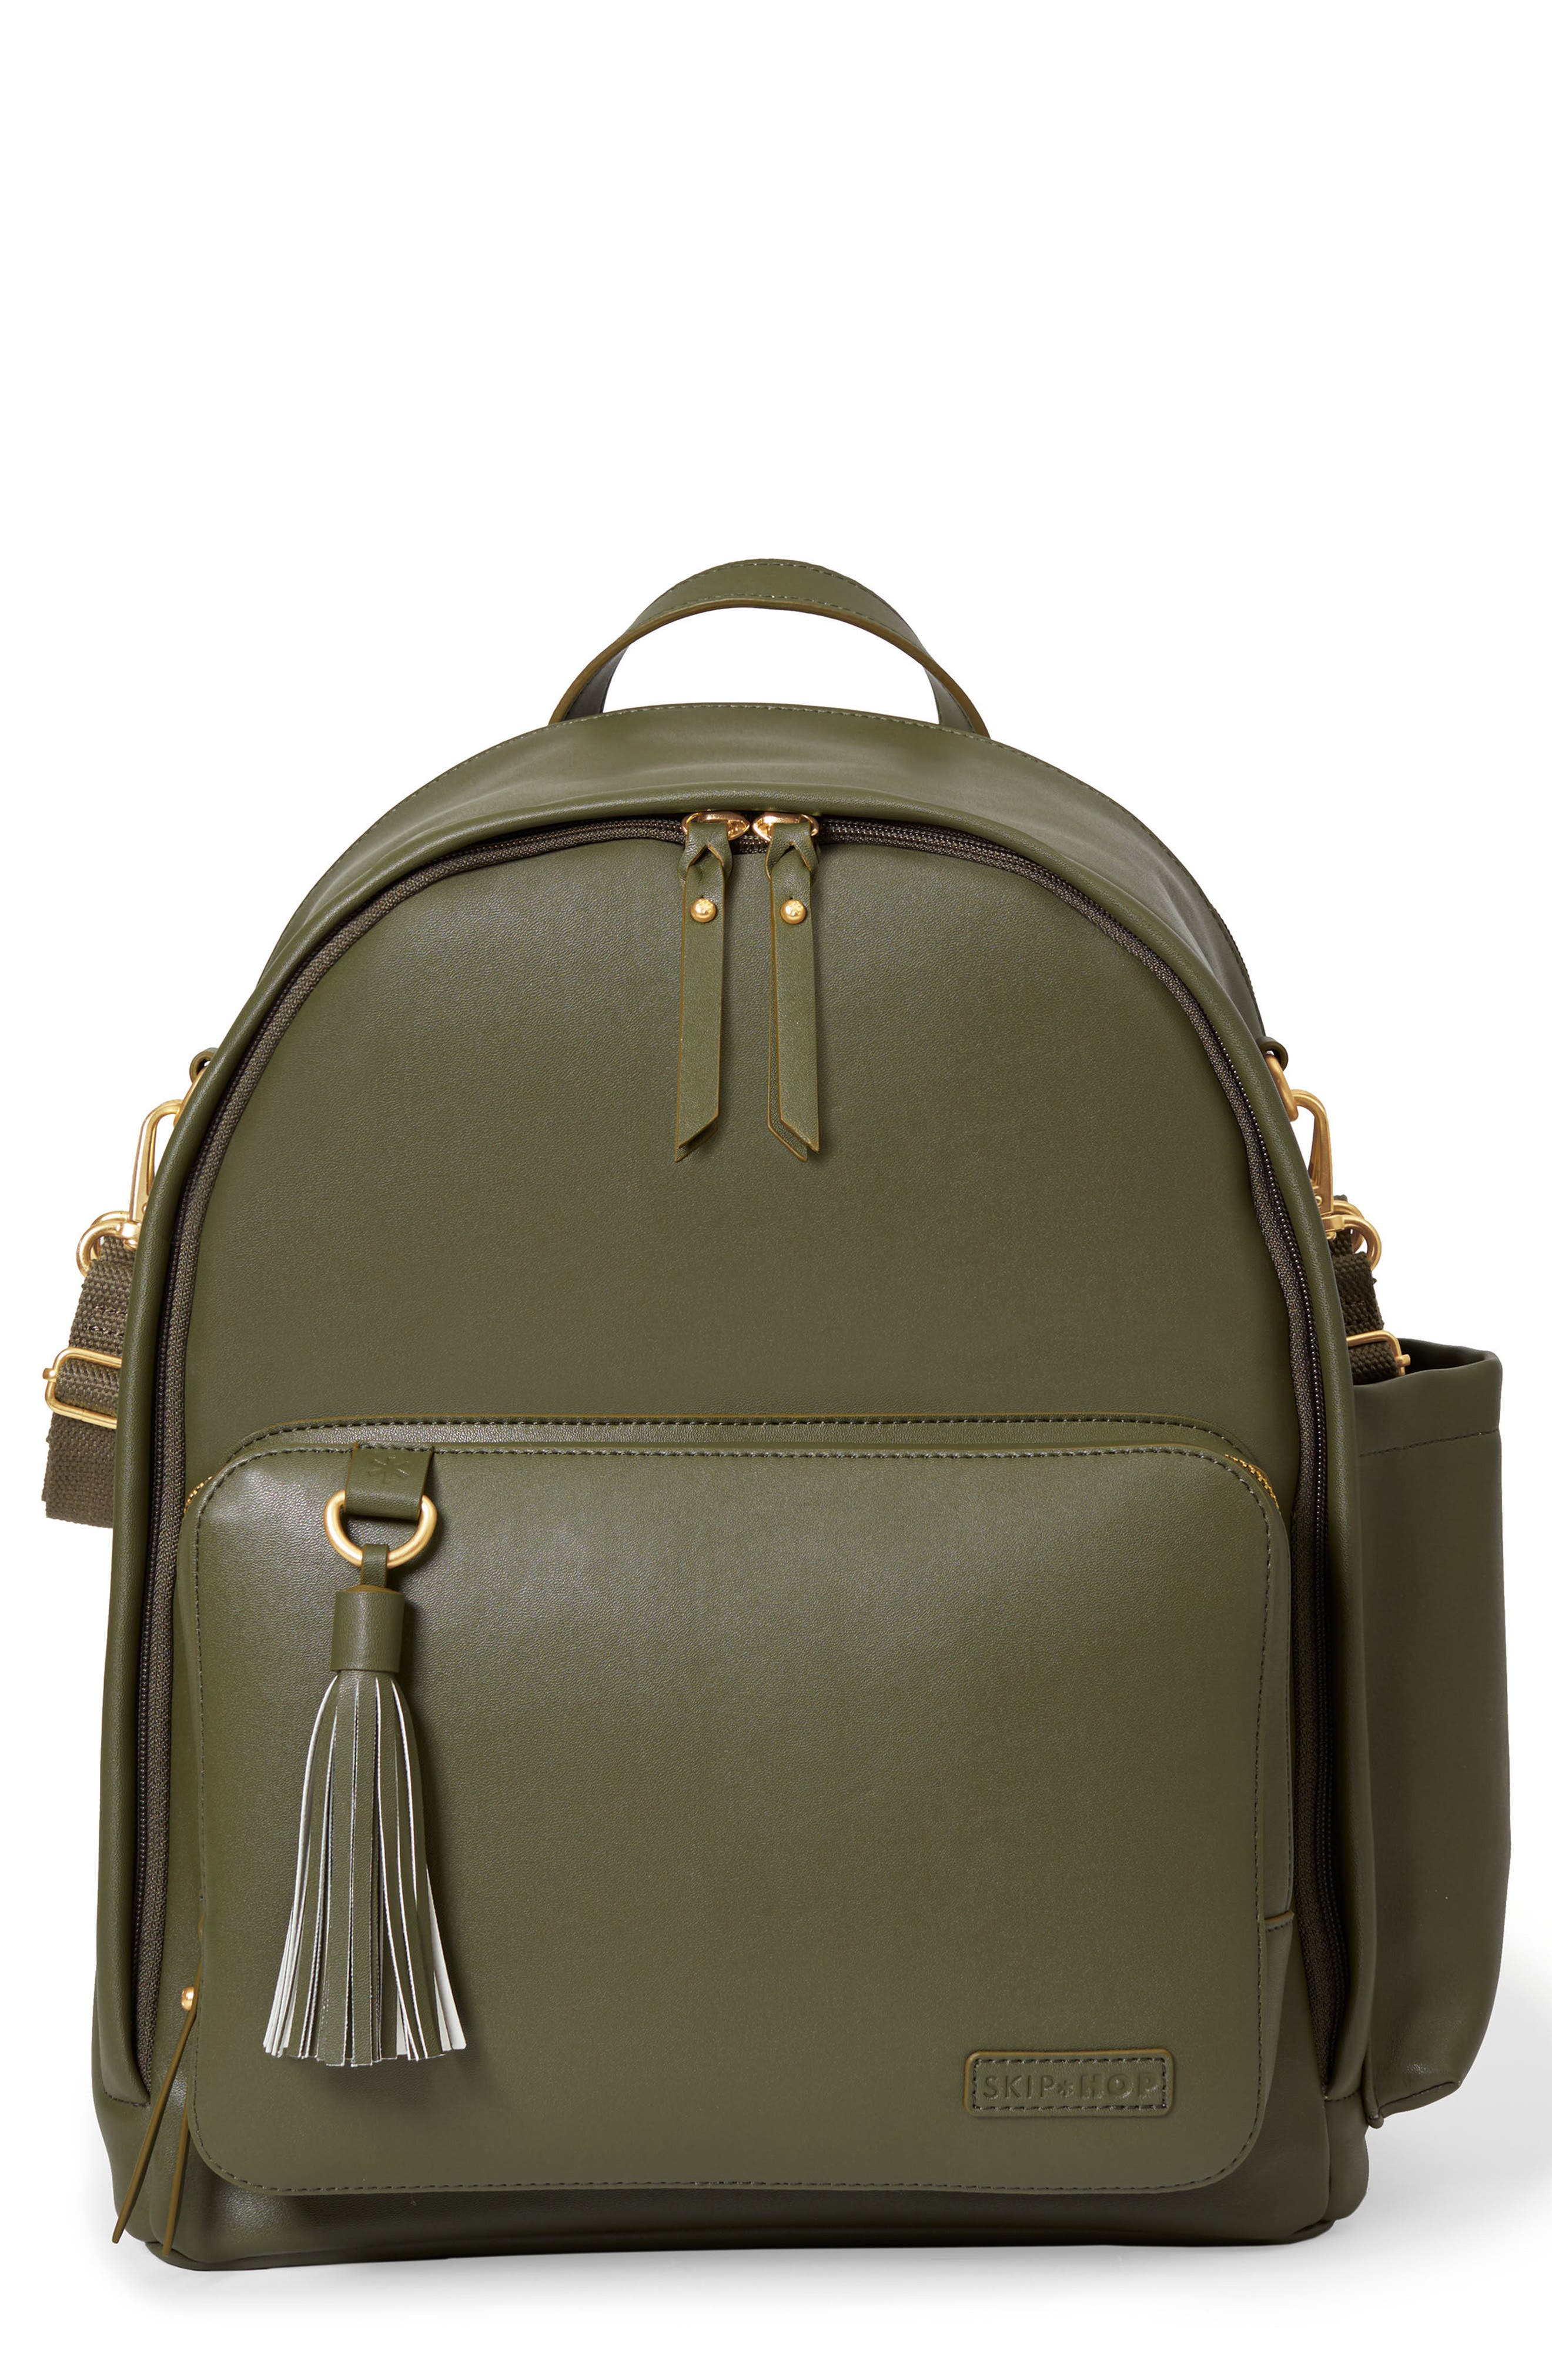 SKIP HOP,                             Greenwich Simply Chic Diaper Backpack,                             Main thumbnail 1, color,                             OLIVE